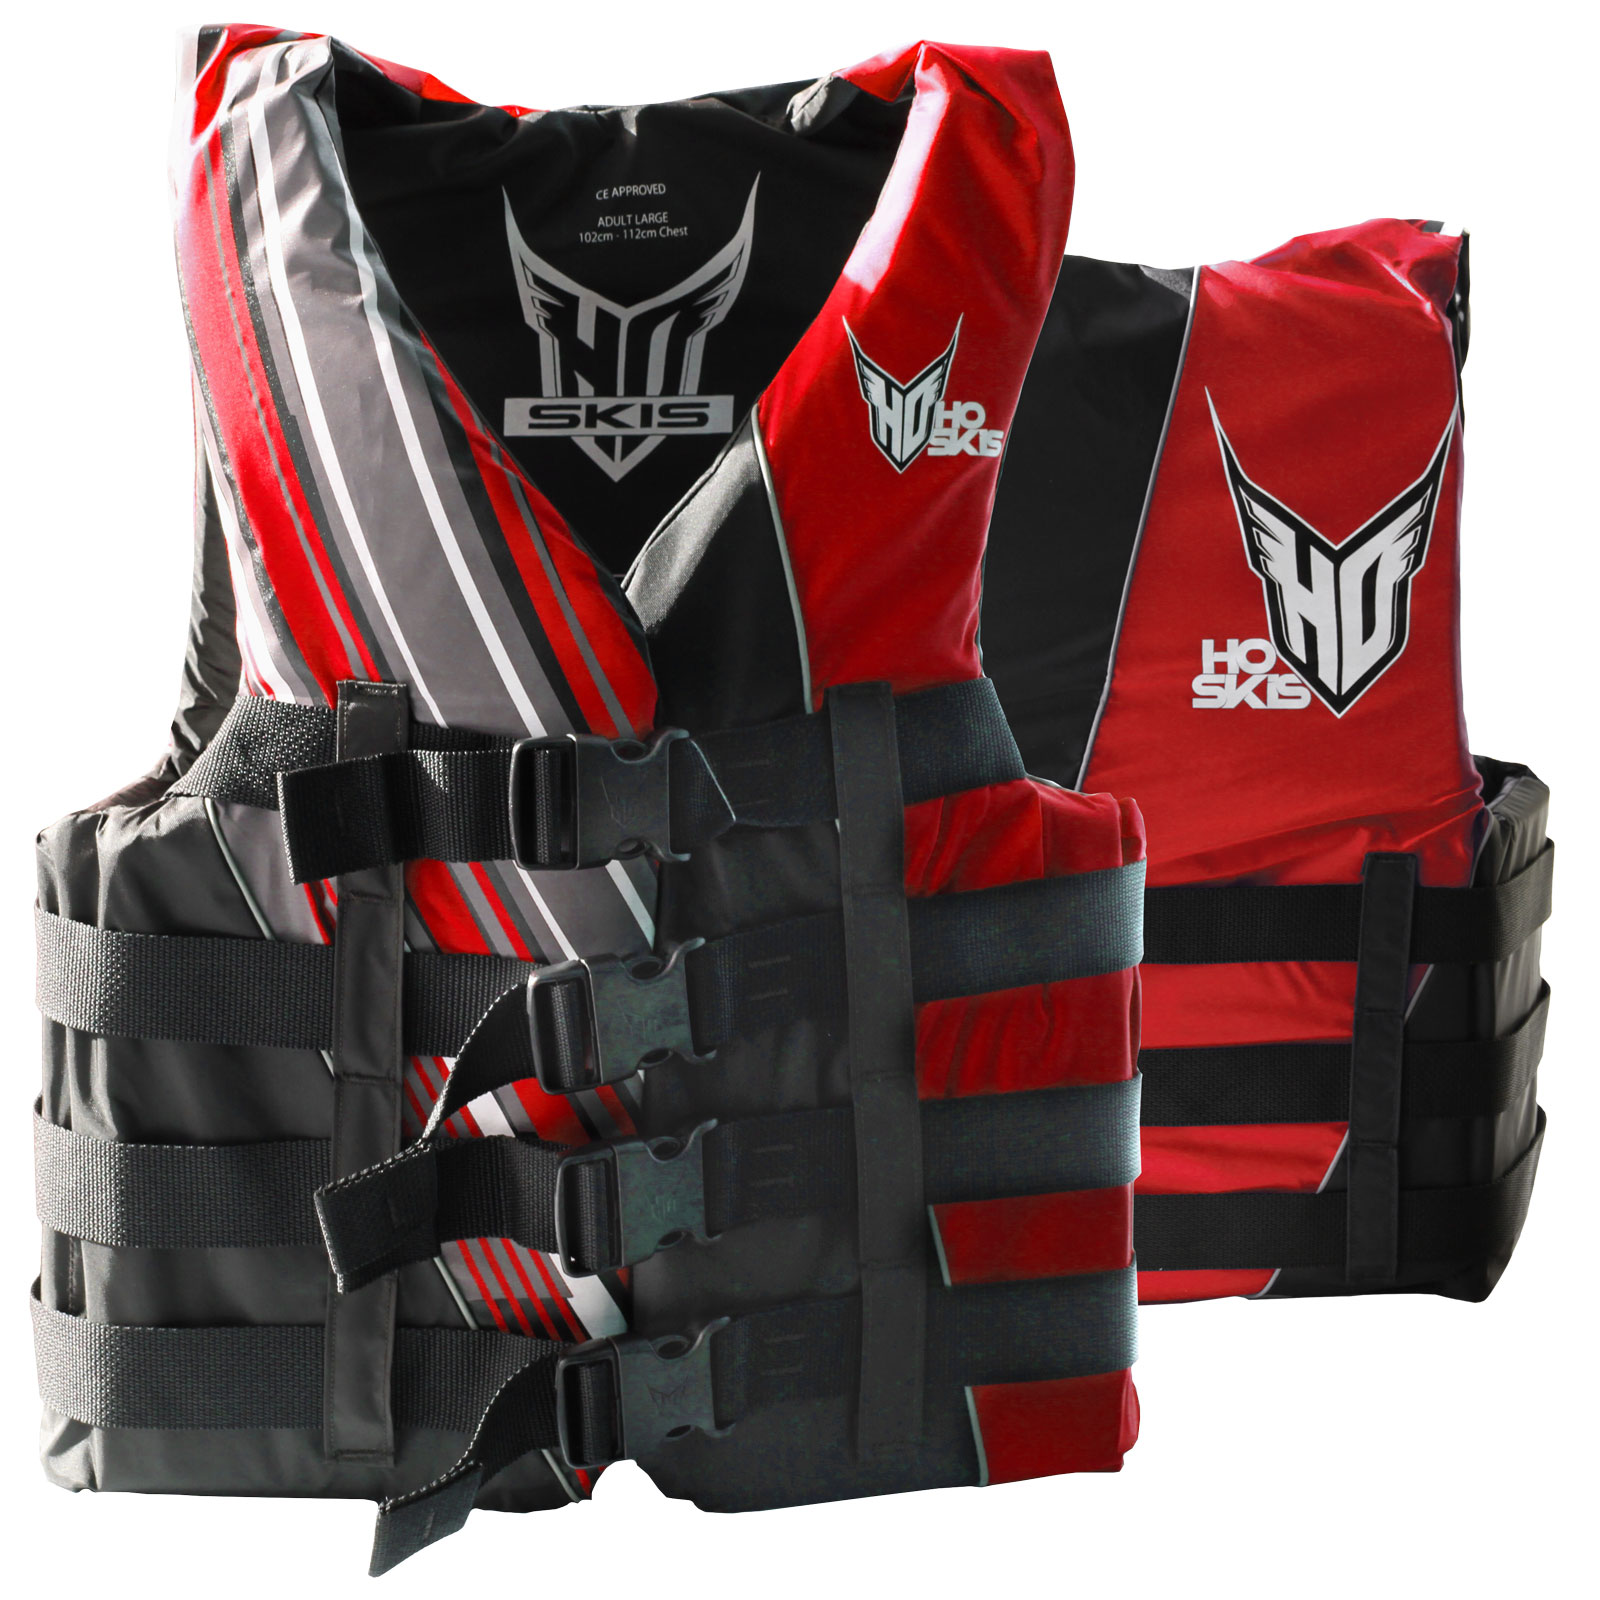 MENS 4-BUCKLE VEST BLACK/RED HO SPORTS 2018